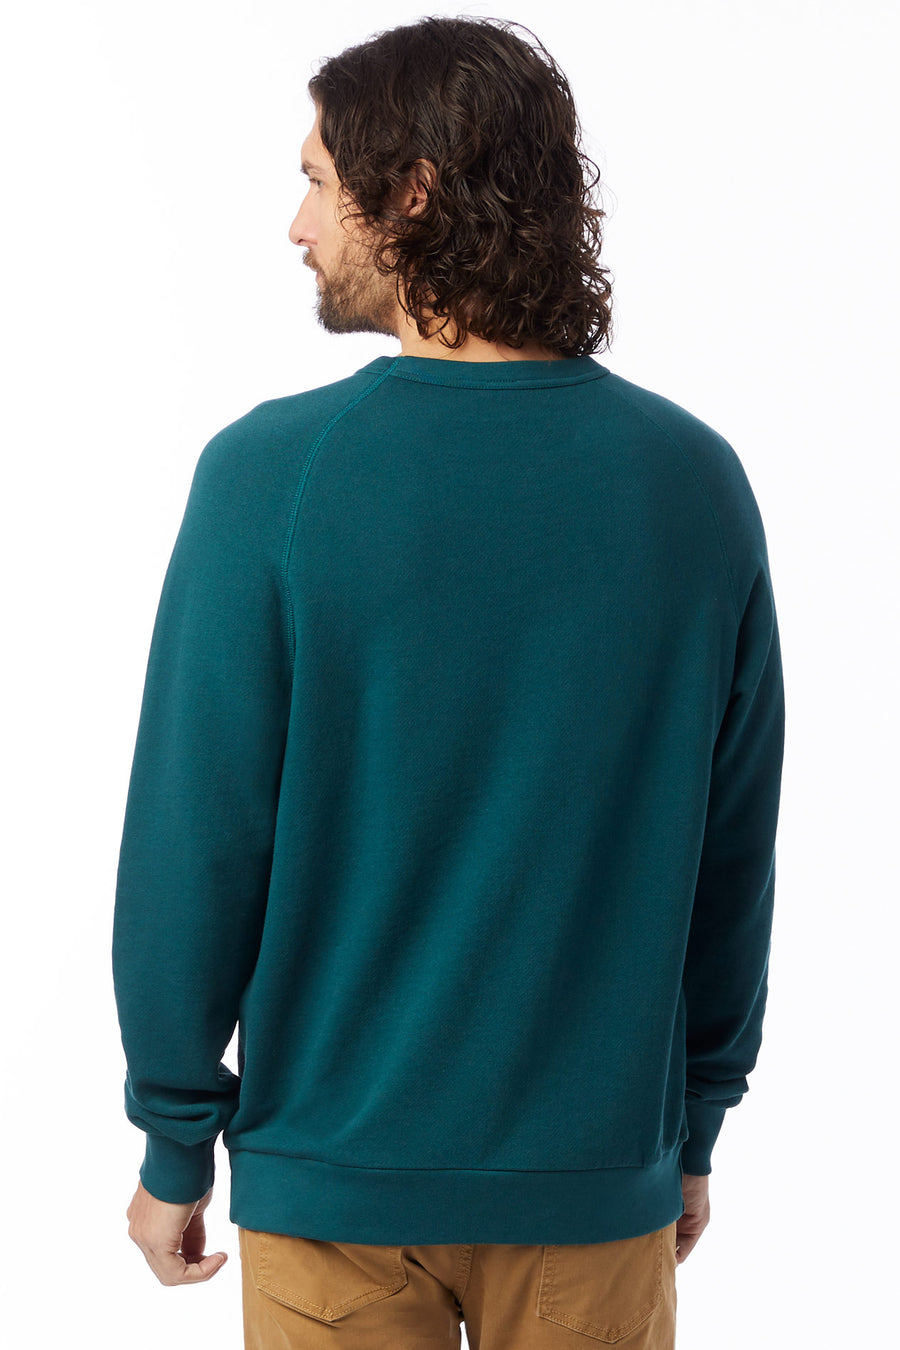 Washed Terry Champ - Dark Teal